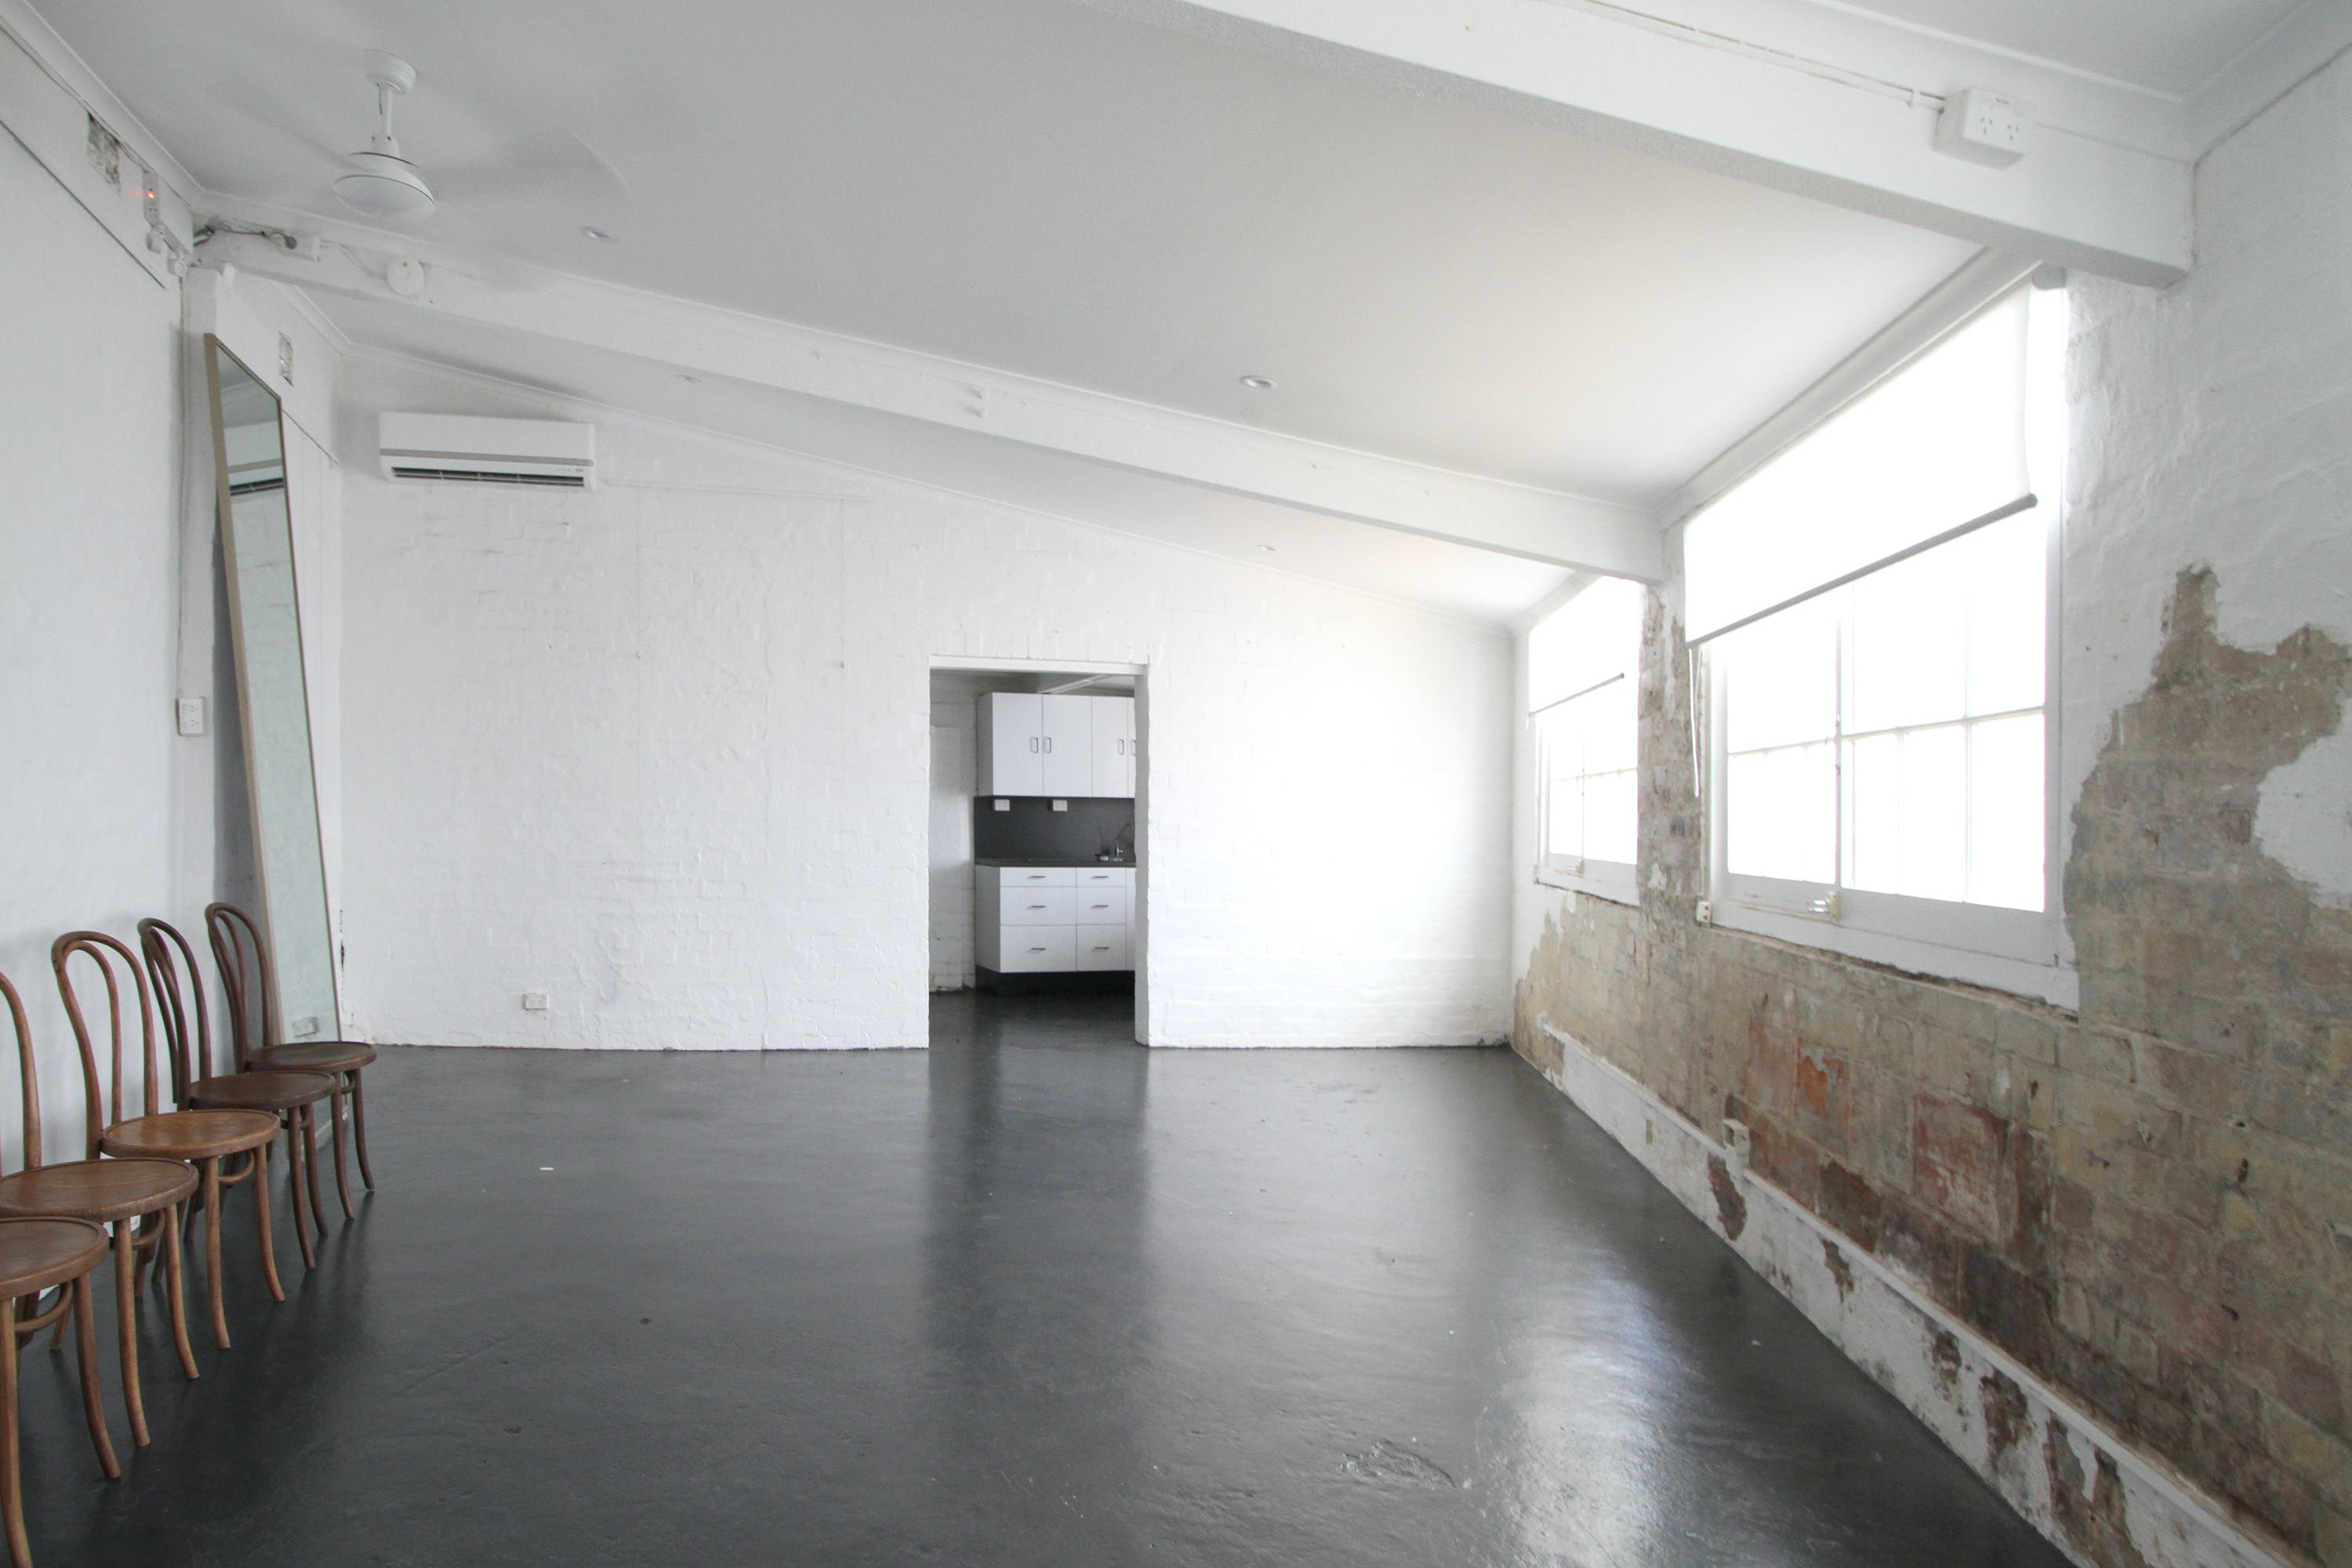 Annexe, multi-use area at Comber Street Studios, image 6